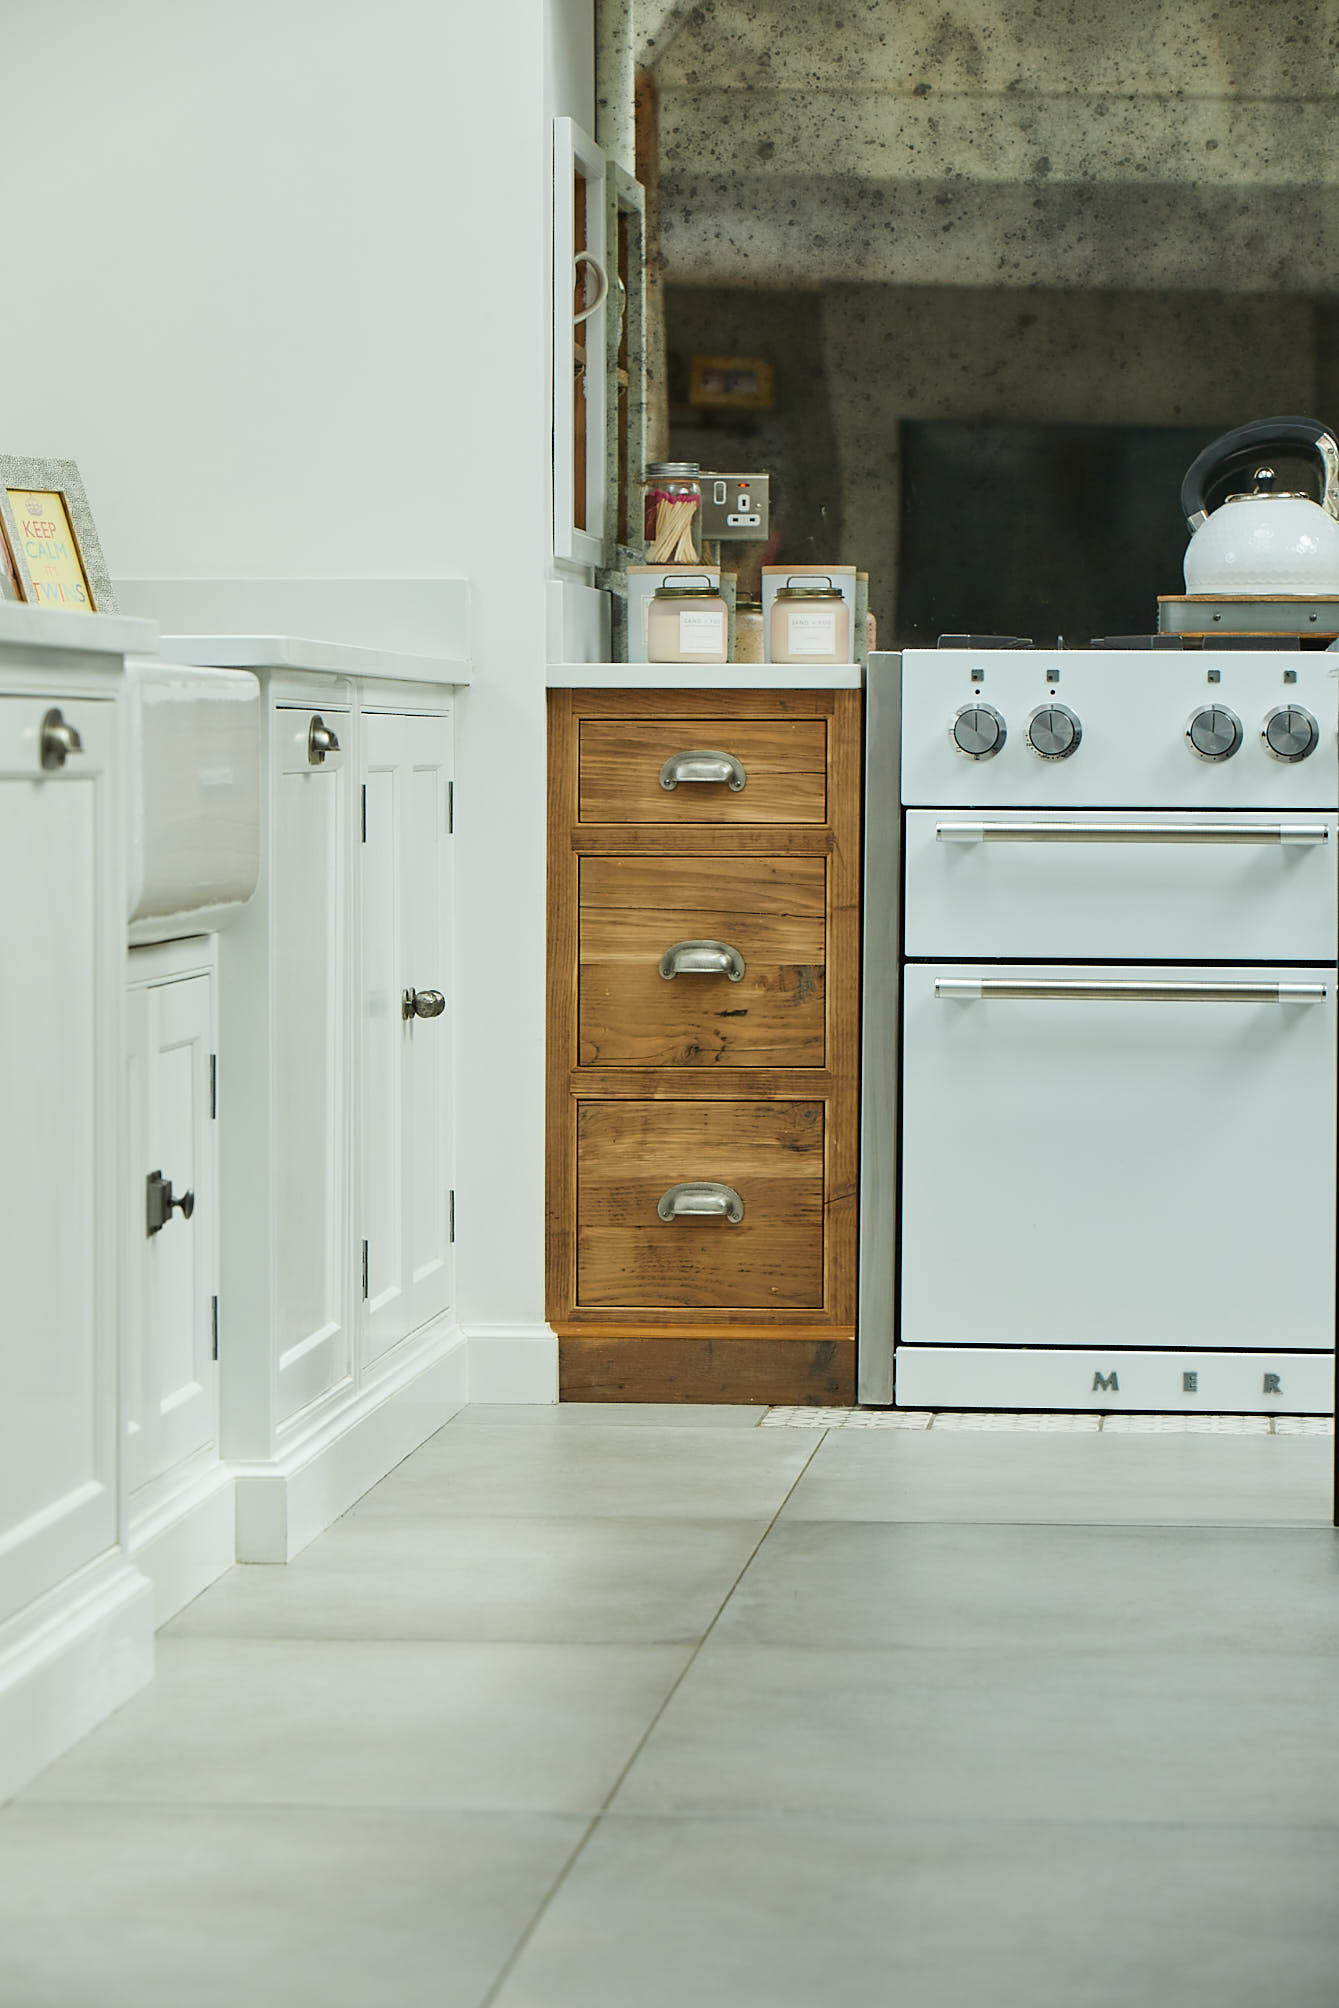 Reclaimed rustic pan drawers next to white Mercury range cooker